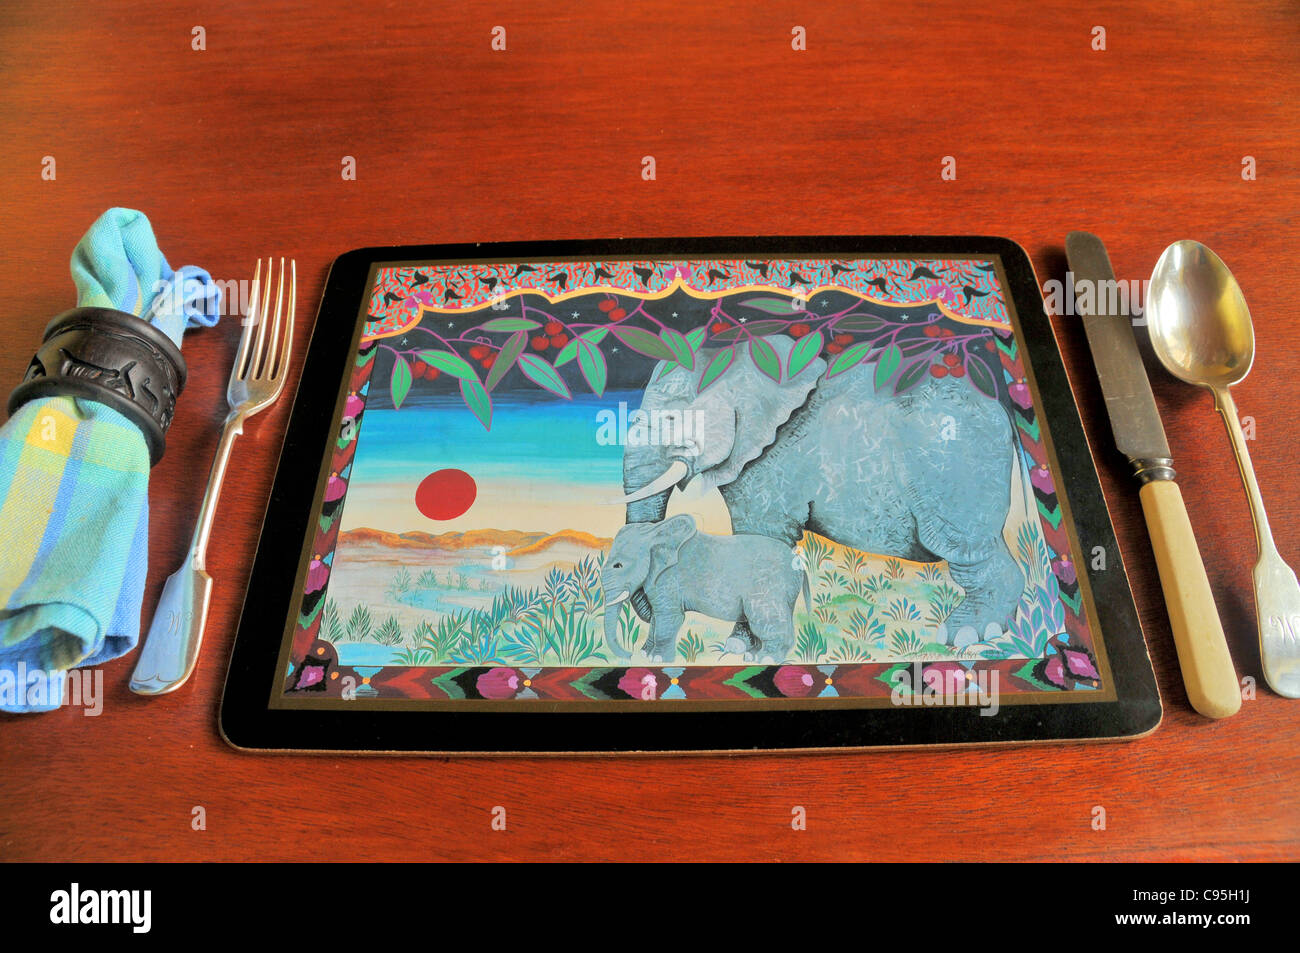 Asian elephant design place mat with with knife and fork and napkin set out on a wooden dining table. - Stock Image